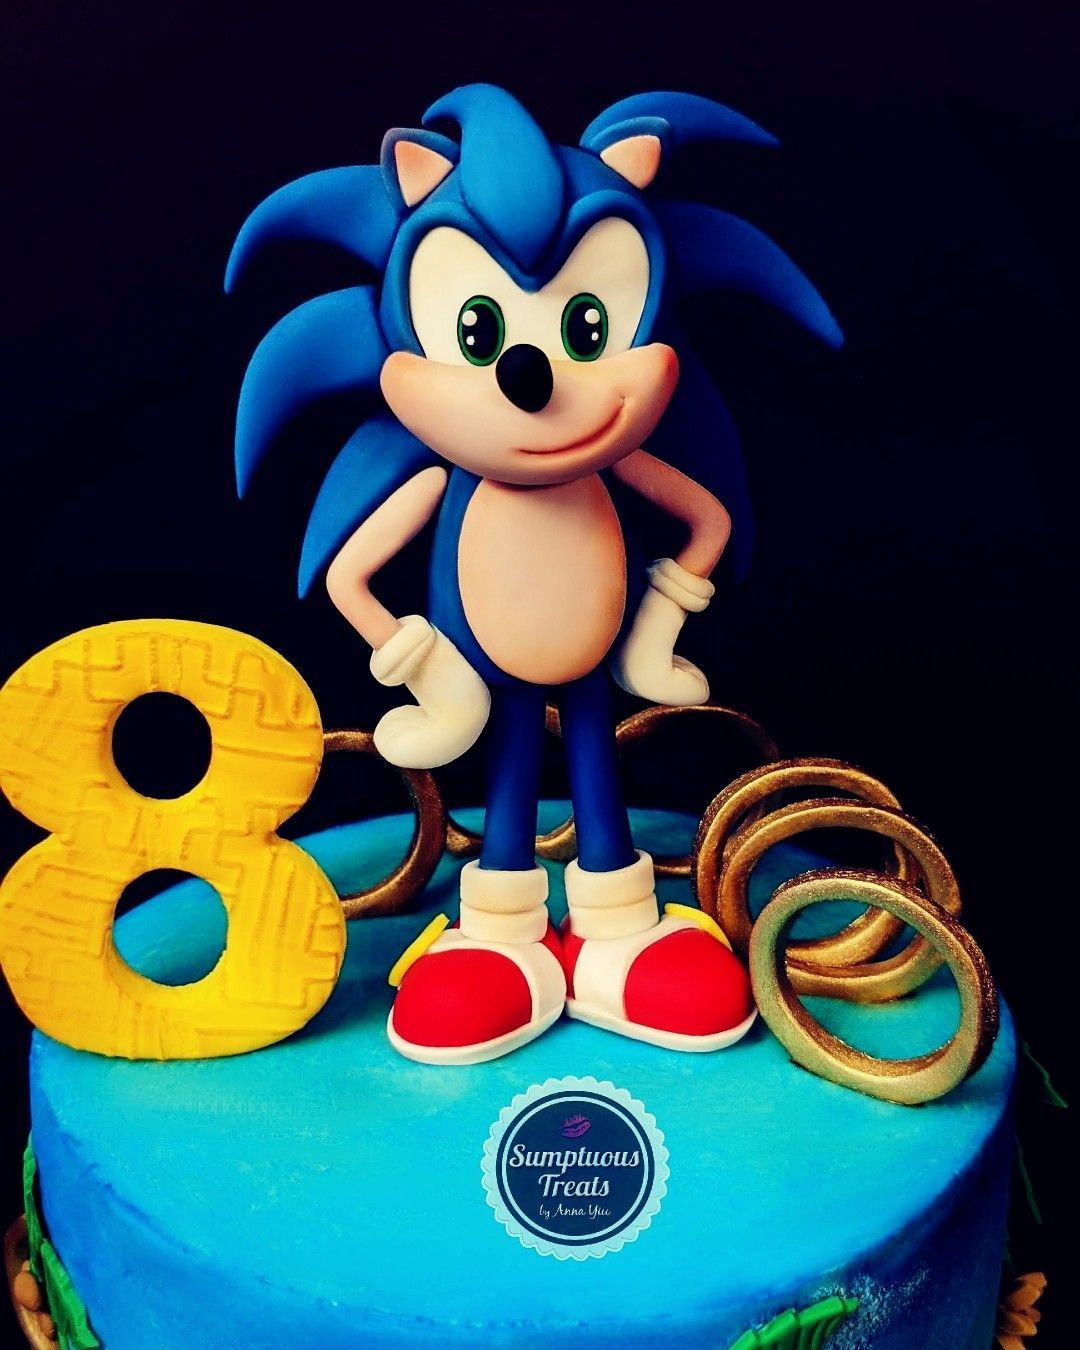 Sonic The Hedgehog Cake Topper Sonic Sonicthehedgehog Sonicthemecake Nintend In 2020 Hedgehog Cake Sonic The Hedgehog Cake Sonic Cake